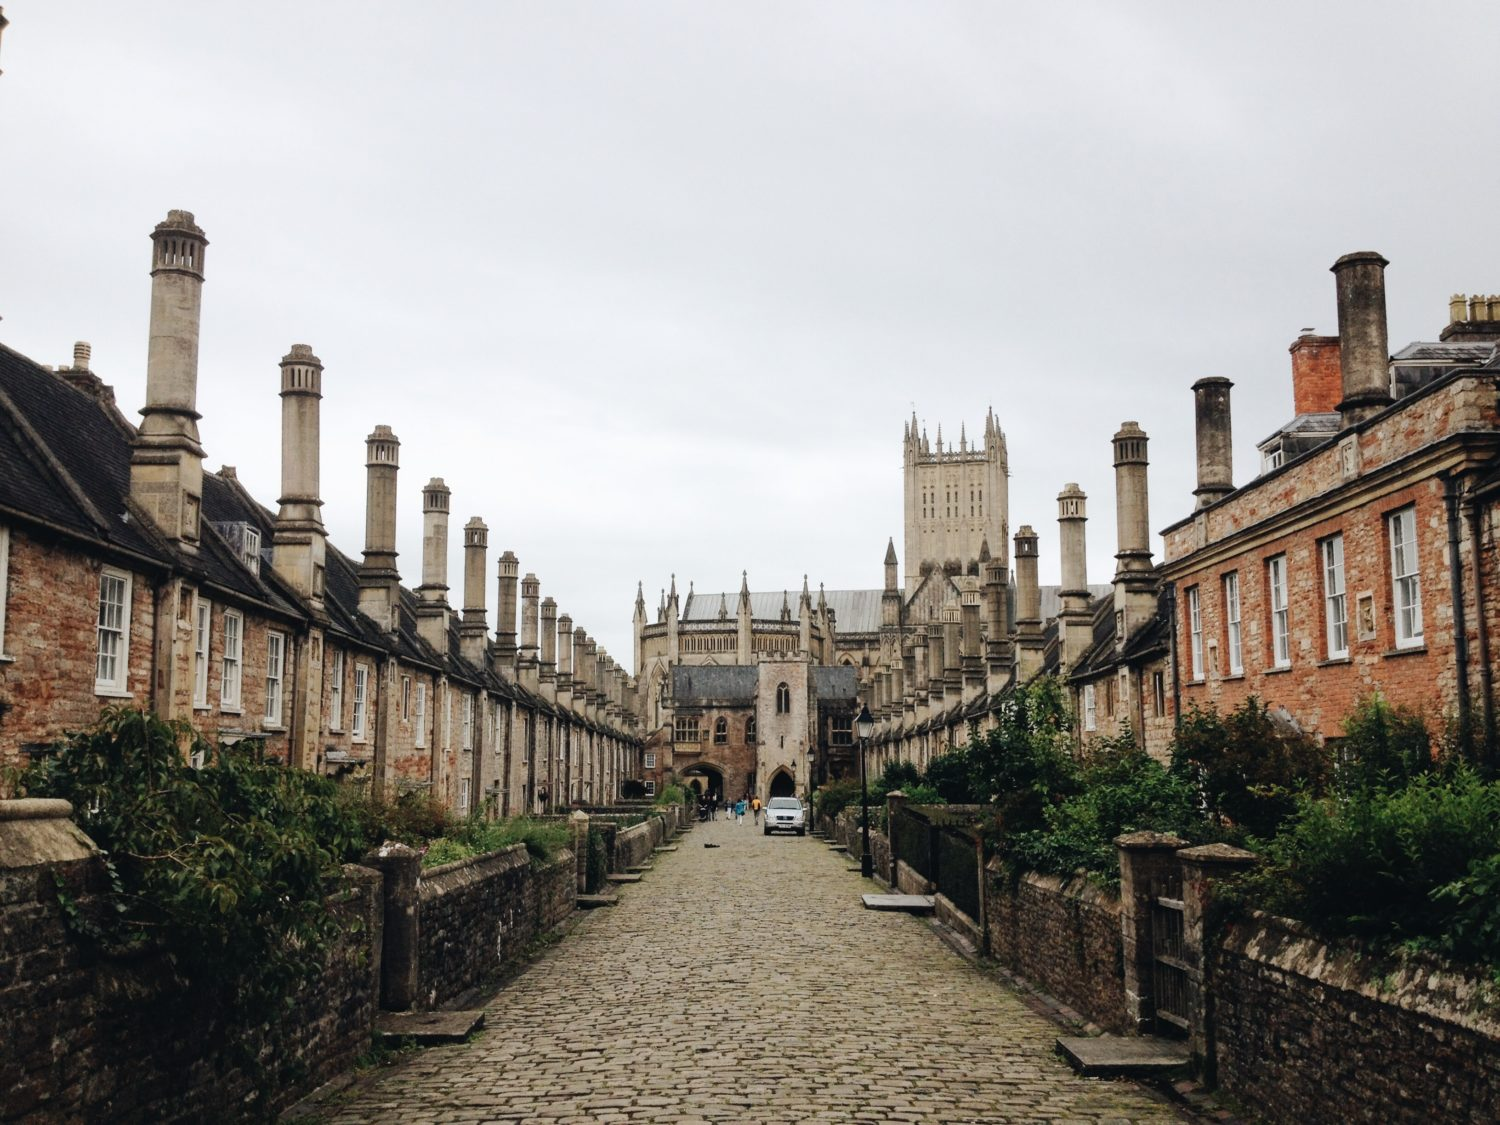 Vicar's Close at Wells in Somerset